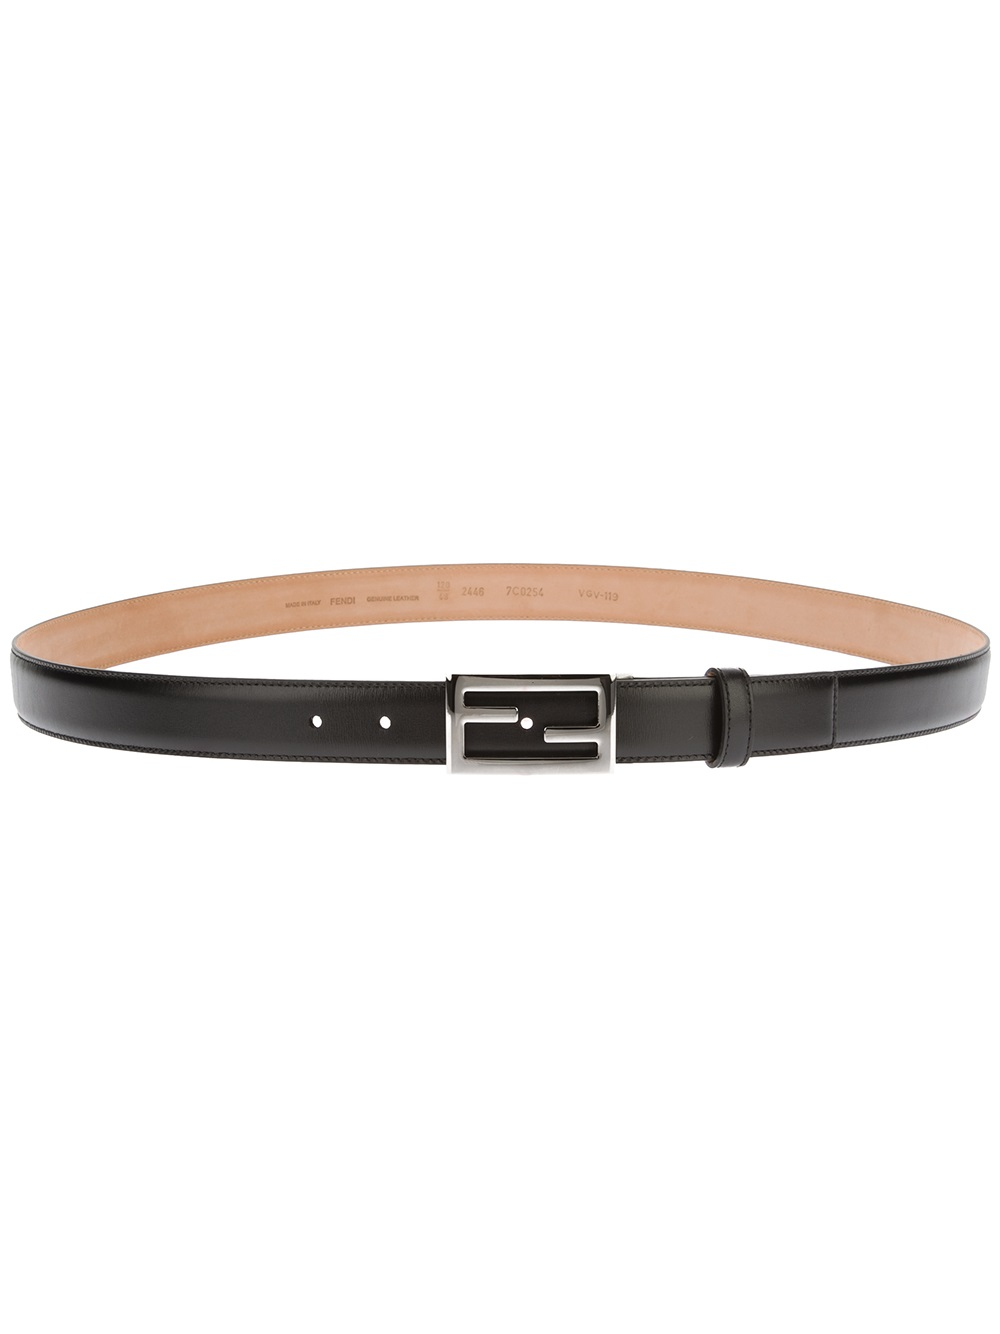 fendi logo buckle belt in black for men lyst